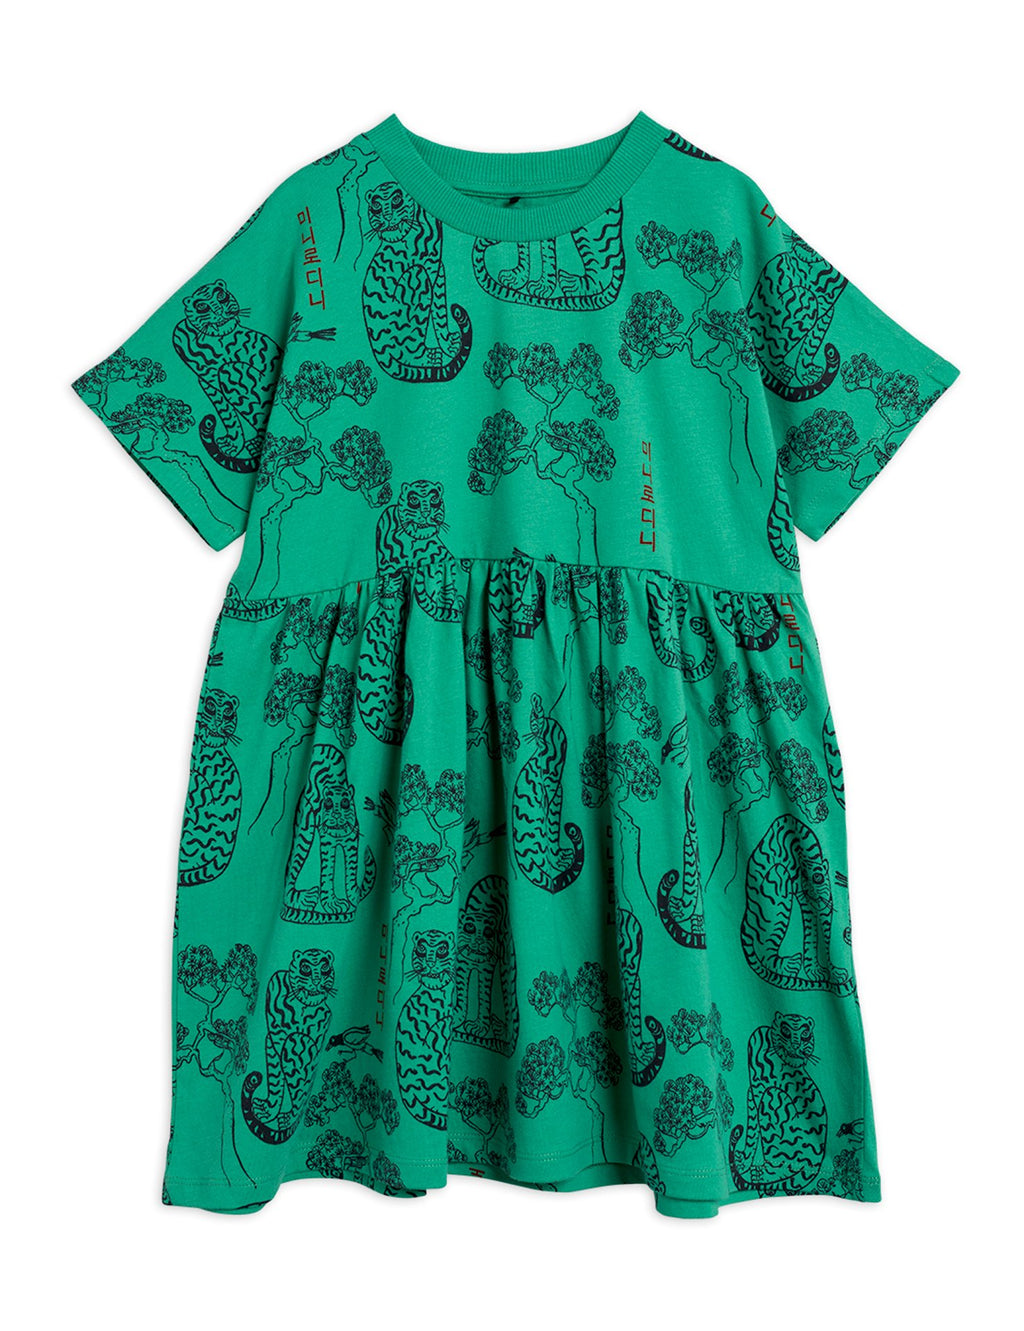 MINI RODINI / Tigers dress